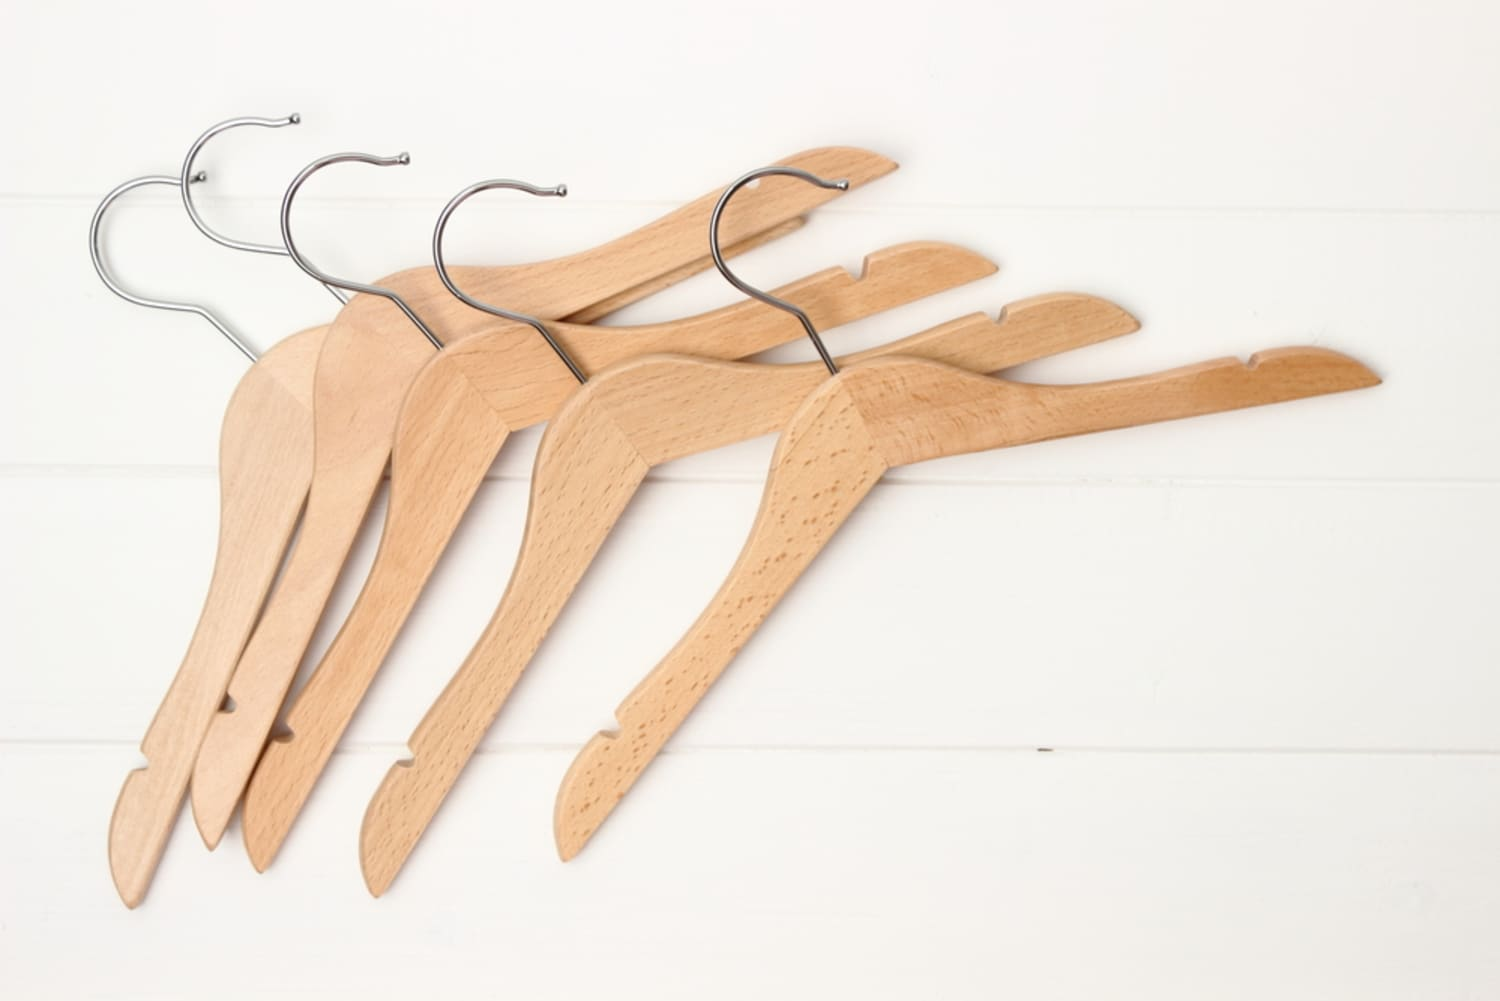 Where To Buy a Whole Bunch of Wooden Hangers Without Going Broke